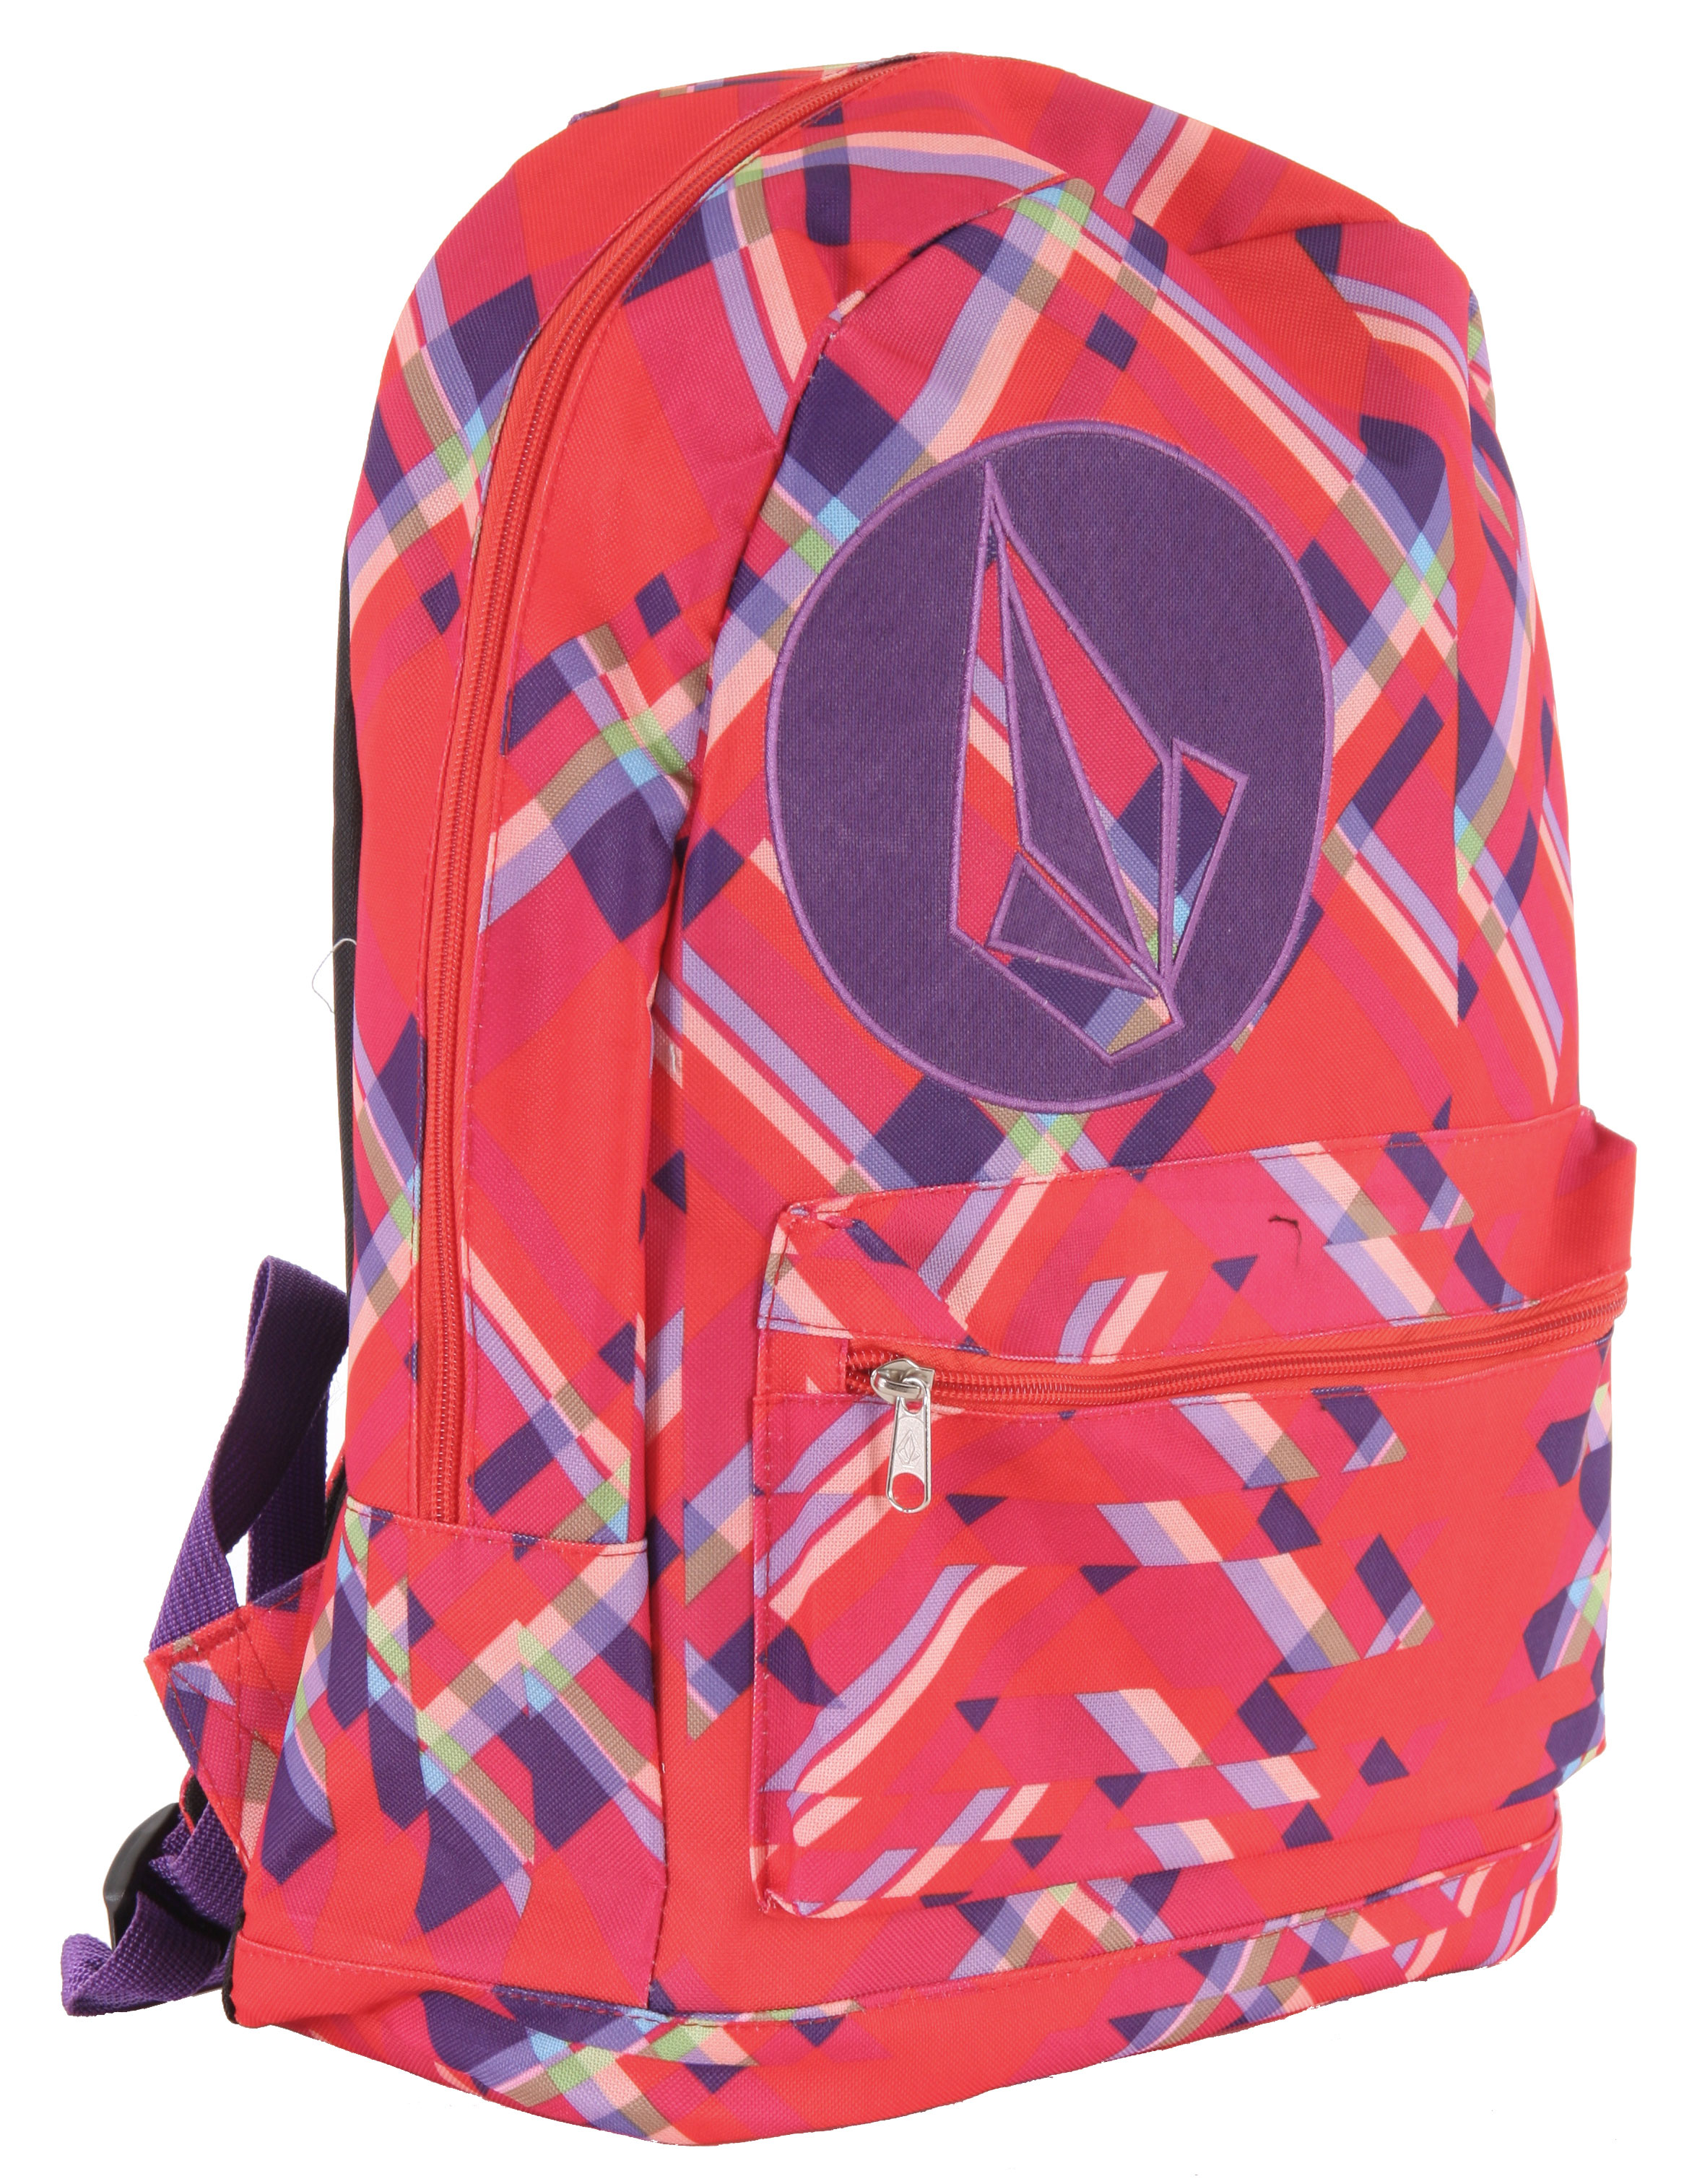 "Surf The Volcom Well Armed Backpack easily and comfortably carries your gear for years to come. The utility pack has an exterior front pocket so you can get to your things easily and the interior zipper pocket helps separate and organize your gear. With the big pack, you'll be able to carry more than enough gear, clothes, books and electronics along with you. The shoulder straps are padded so that you can move from place to place in comfort. The fabric is durable polyester so that your backpack will have a long life. The applique on the front shows that you do understand that Volcom is the brand to carry.Key Features of the Volcom Well Armed Backpack: 100% Polyester. Printed Poly Backpack With Circle Stone Applique At Front And Large Stone Embroidery At Back. Exterior Front Pocket And Interior Zipper Pocket. 14""W X 17""H X 6""D. Volume: 19 Liters. - $21.95"